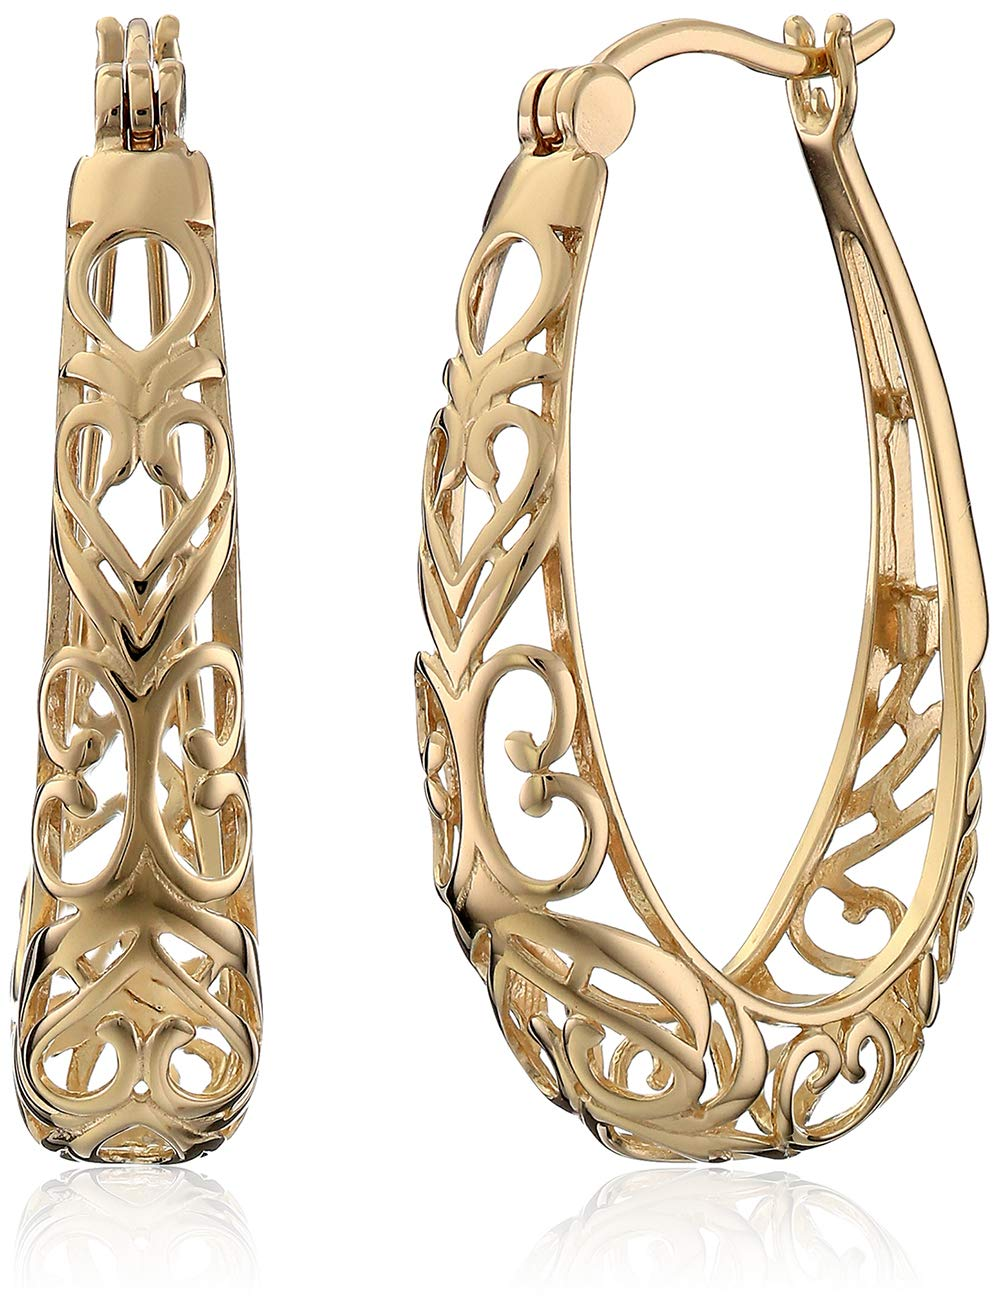 18k Yellow Gold Plated Sterling Silver Filigree Oval Hoop Earrings by Amazon Collection